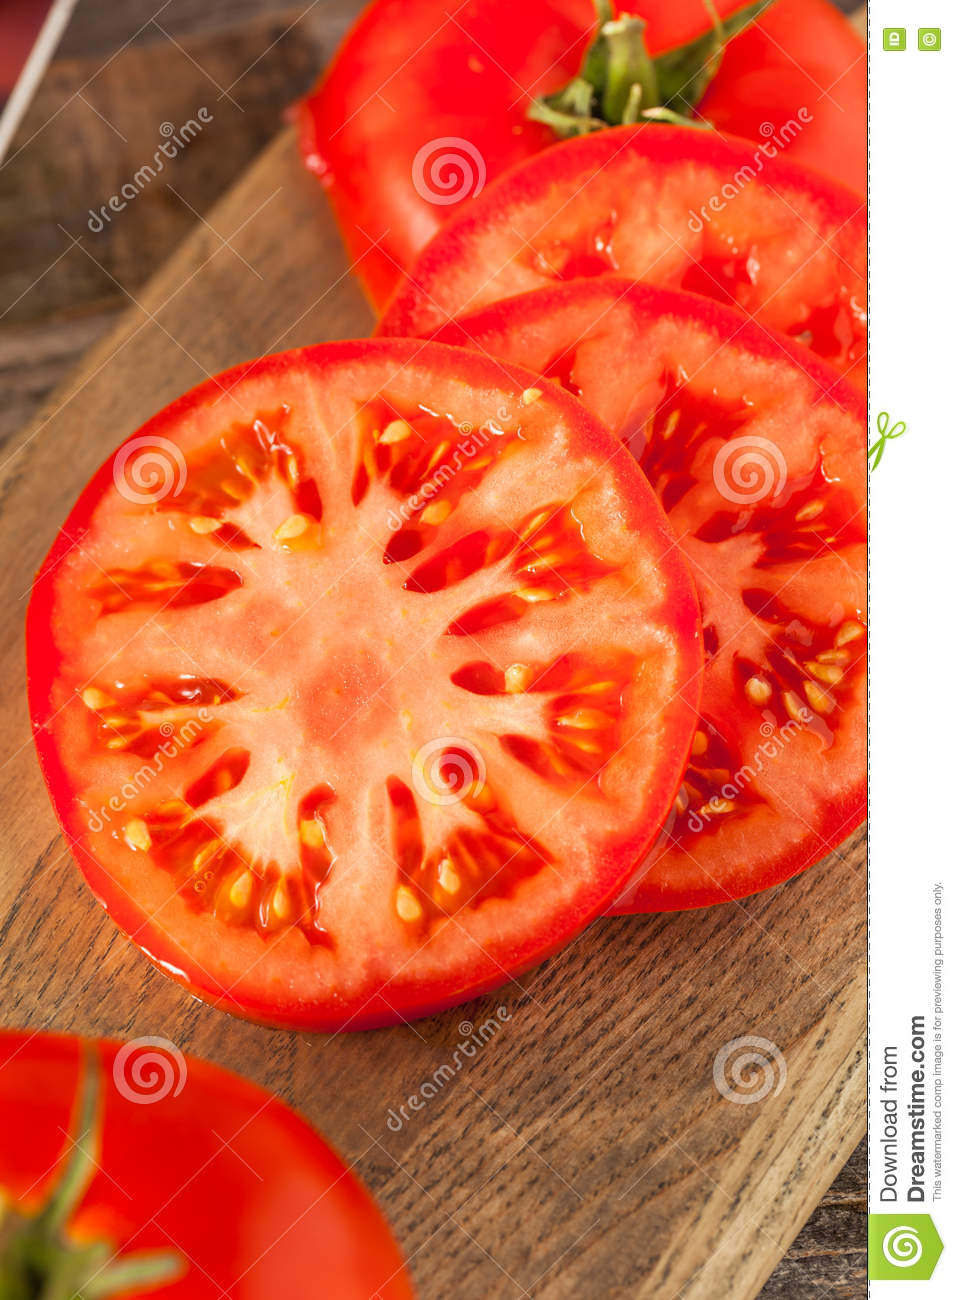 Download Raw Organic Red Beefsteak Tomatoes Stock Image - Image of produce, healthy: 72674771